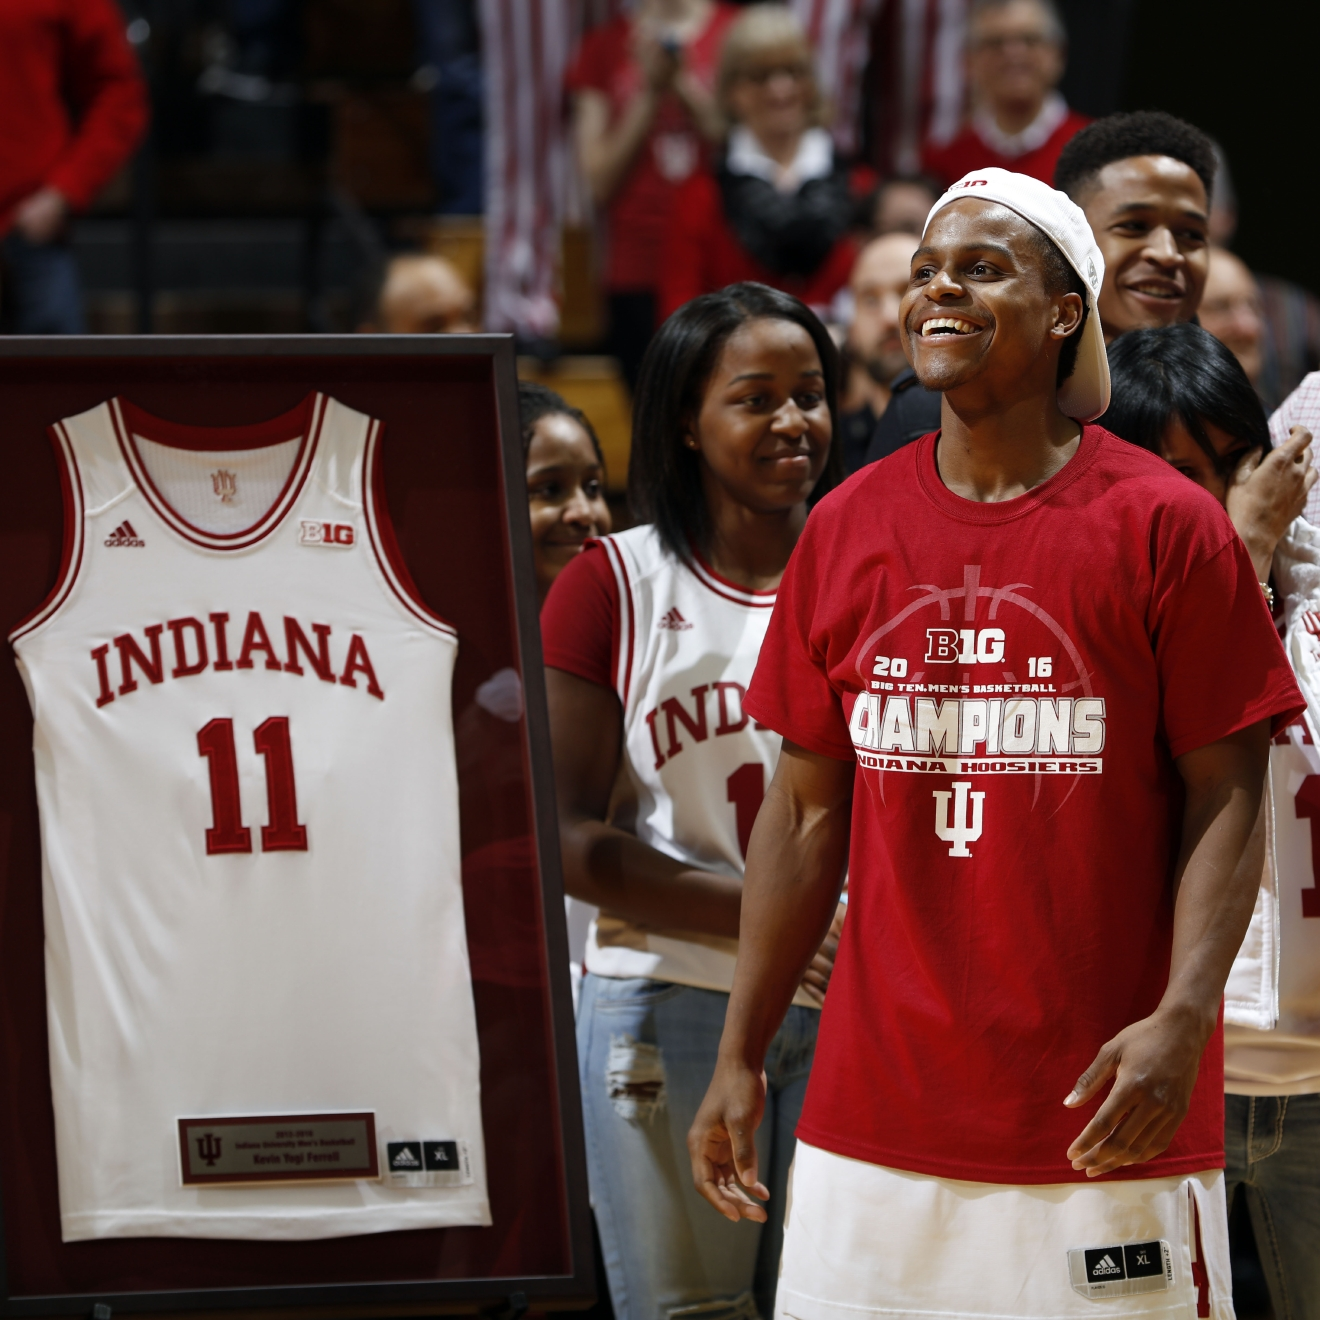 iu s ferrell d usa today sports second team all american wkrc na guard yogi ferrell smiles at the crowd as part of senior night festivities after an